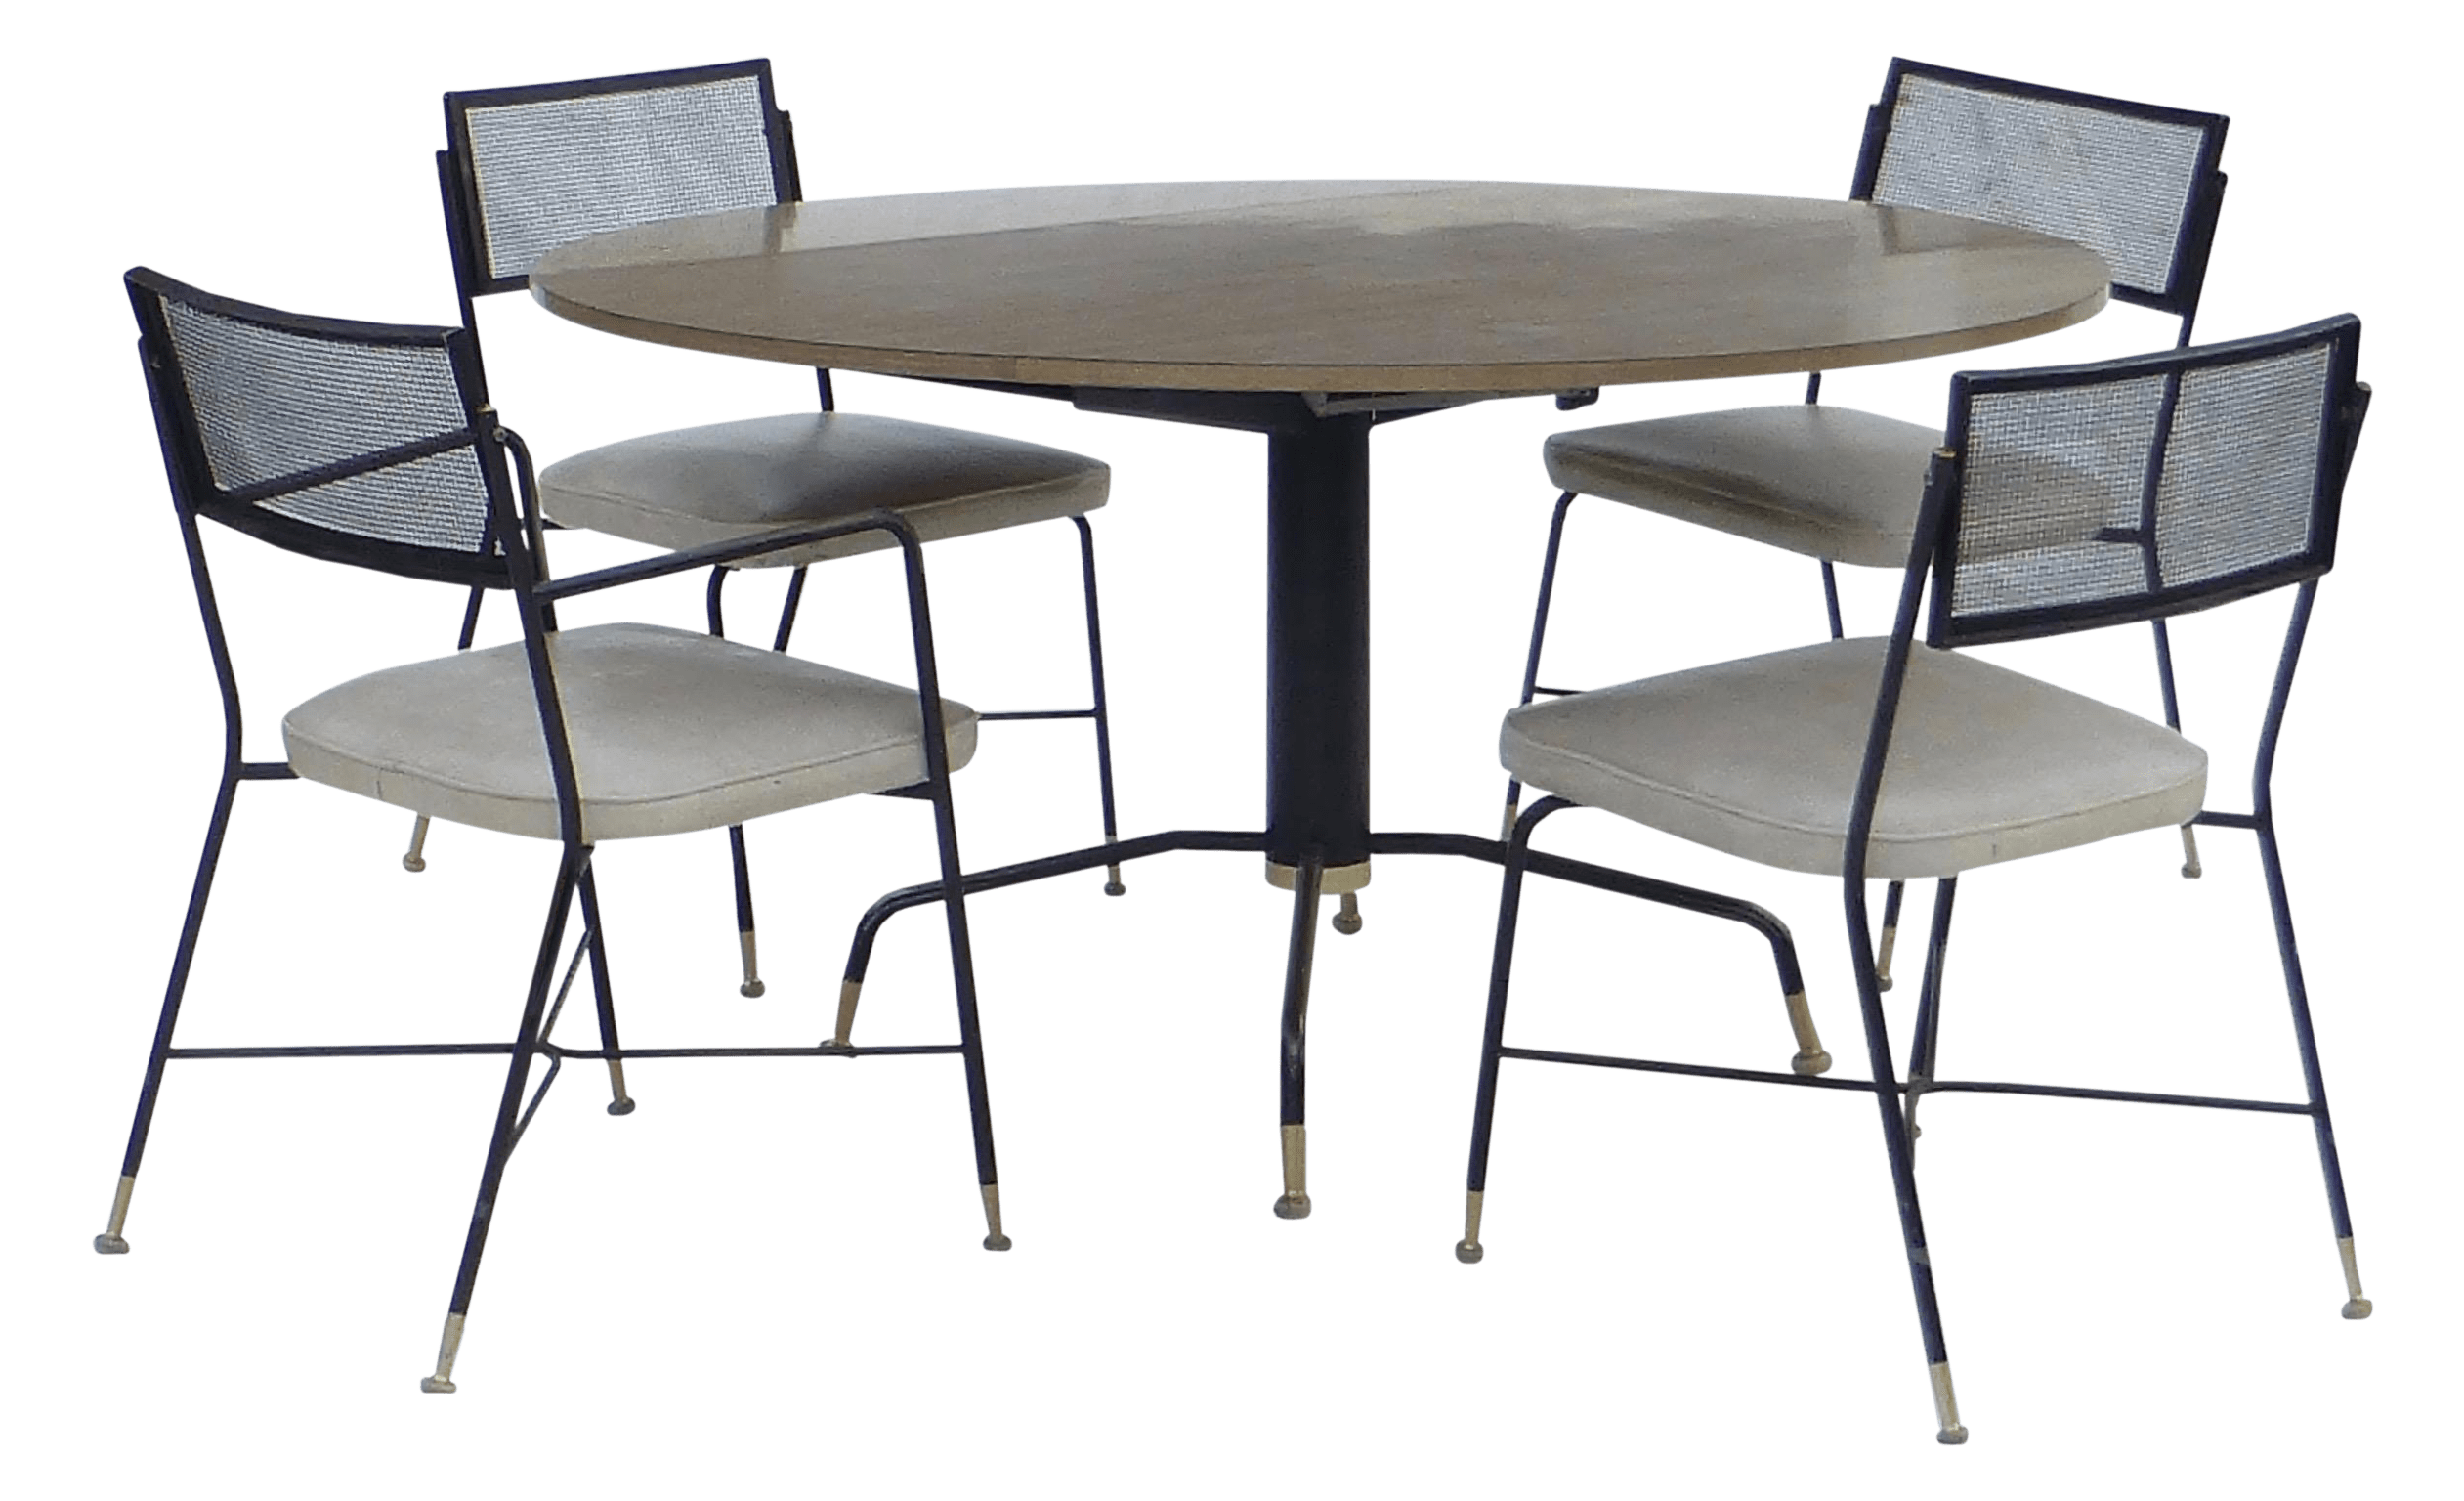 round kitchen table and chairs ireland animal print accent chair 5 piece troy sunshade company dining set chairish